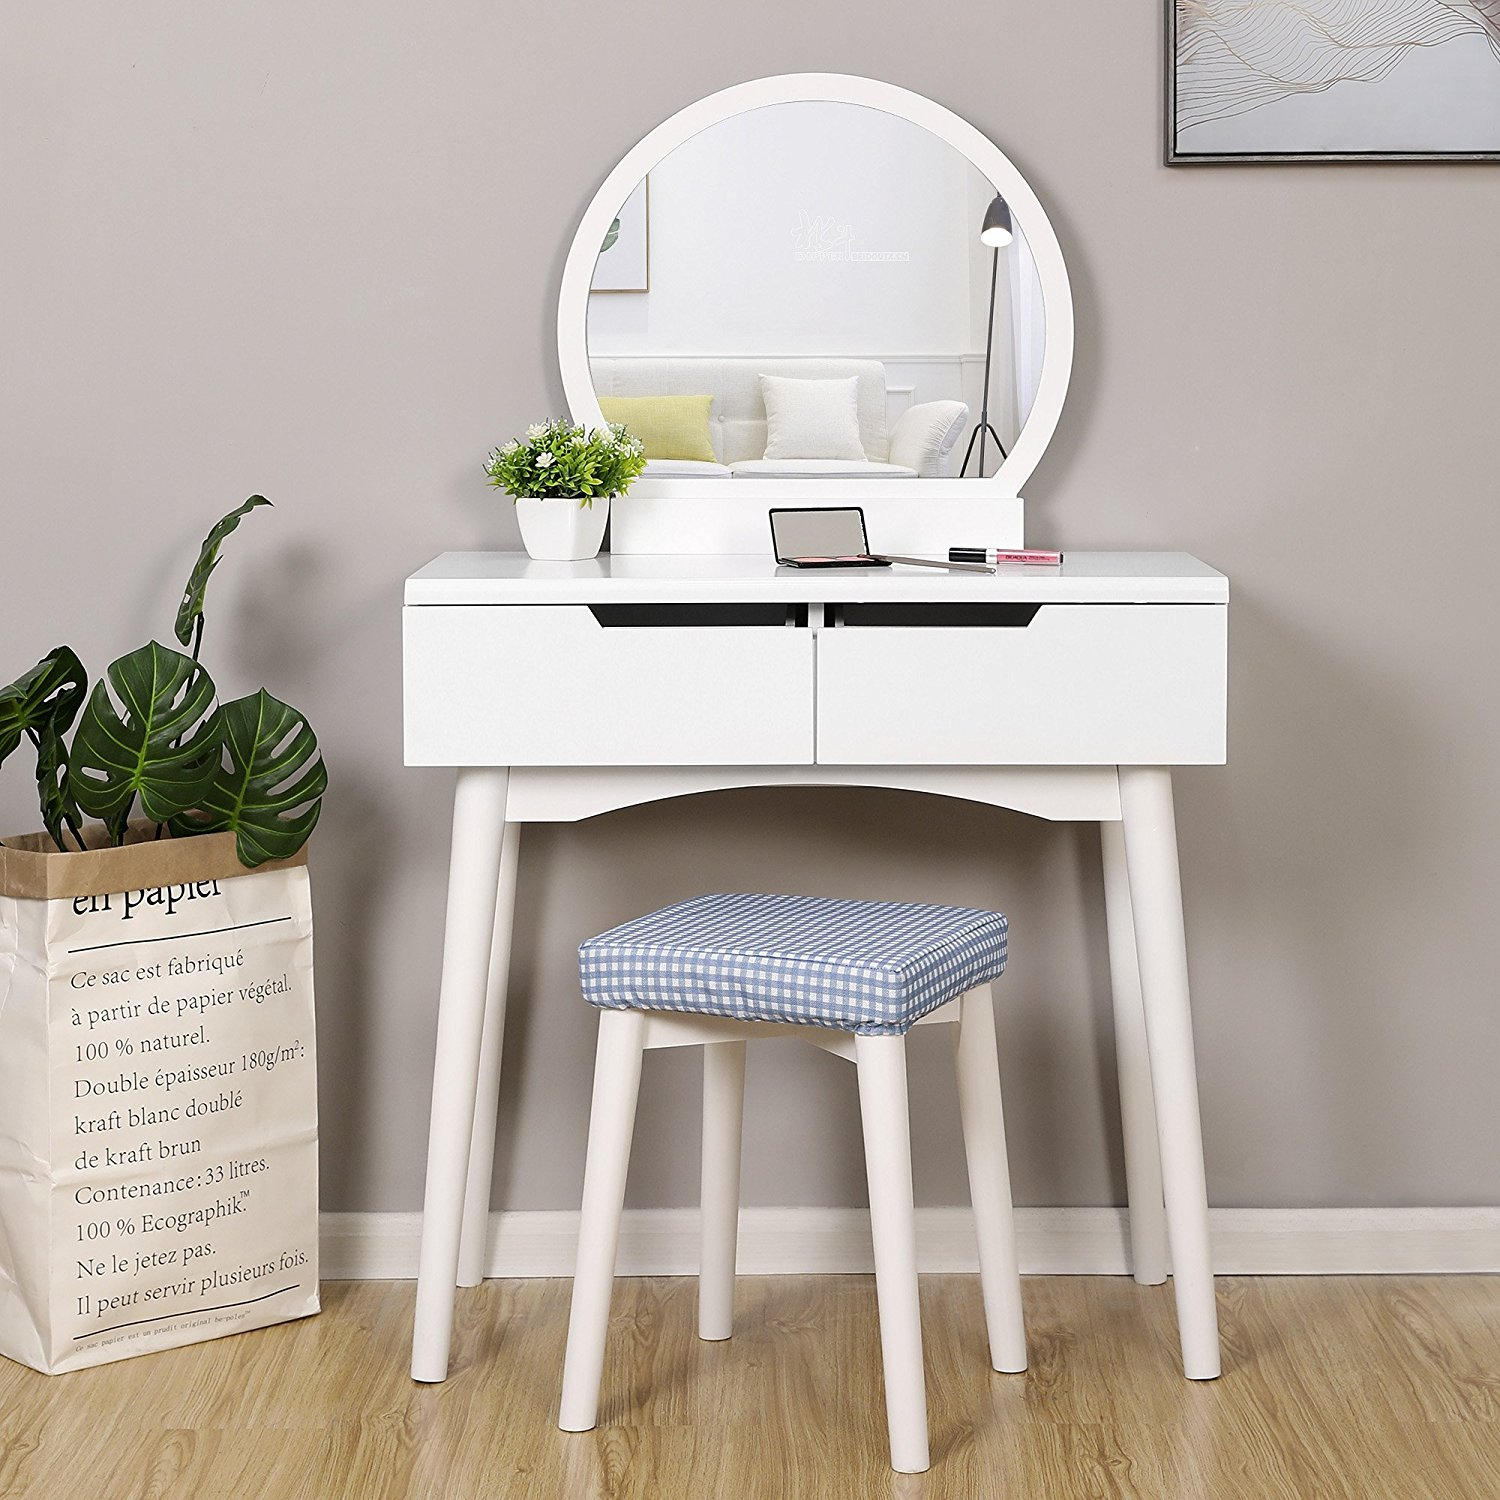 Hot Sale Bedroom Furniture Wooden Dresser Vanity Mirror Makeup Dressing Table Buy Makeup Table Dressing Table Dresser Product On Alibaba Com